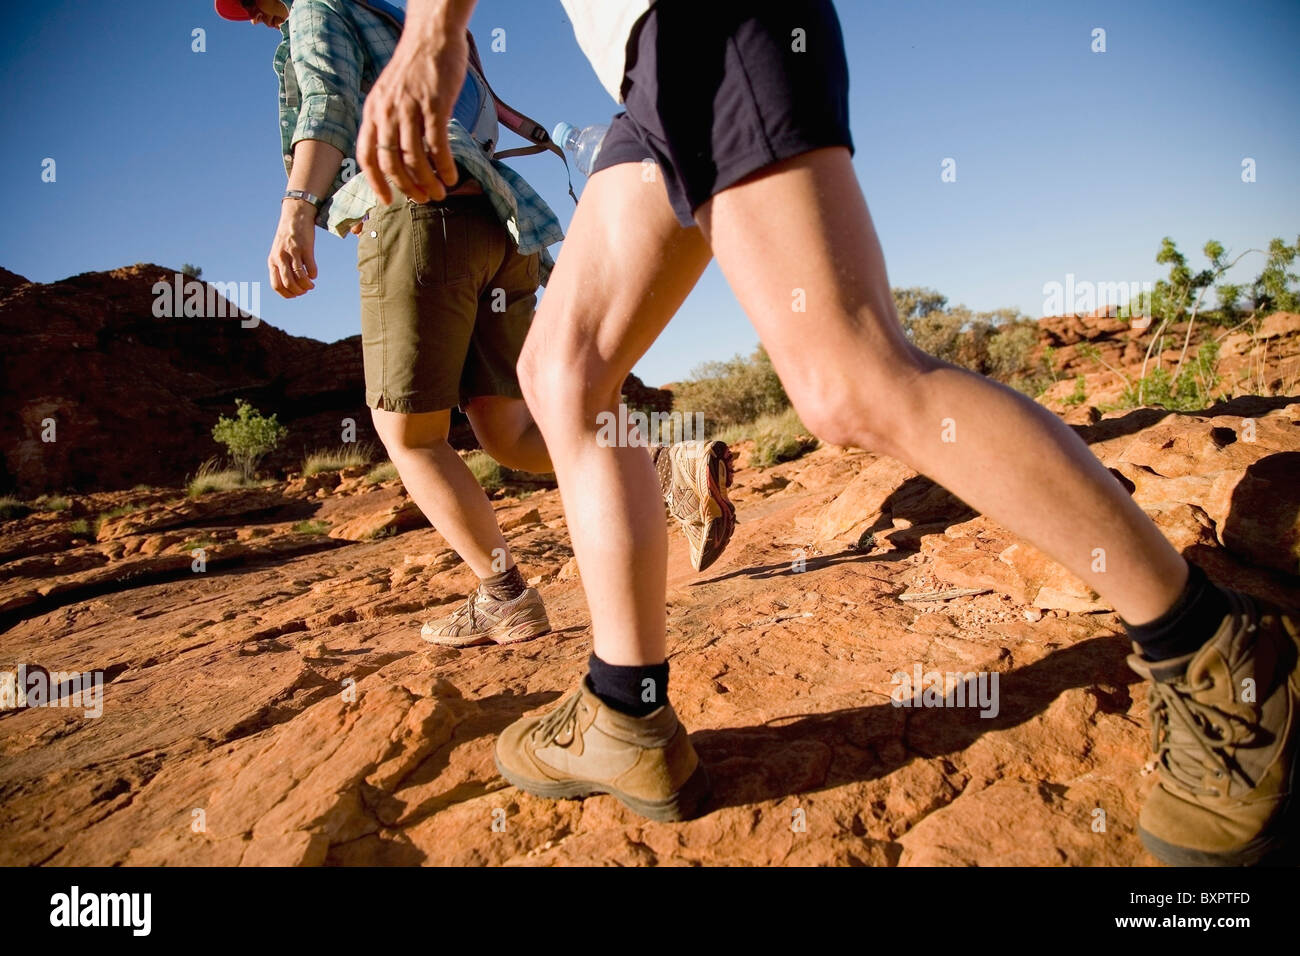 Paare, die im Kings Canyon, Low Angle View Stockbild